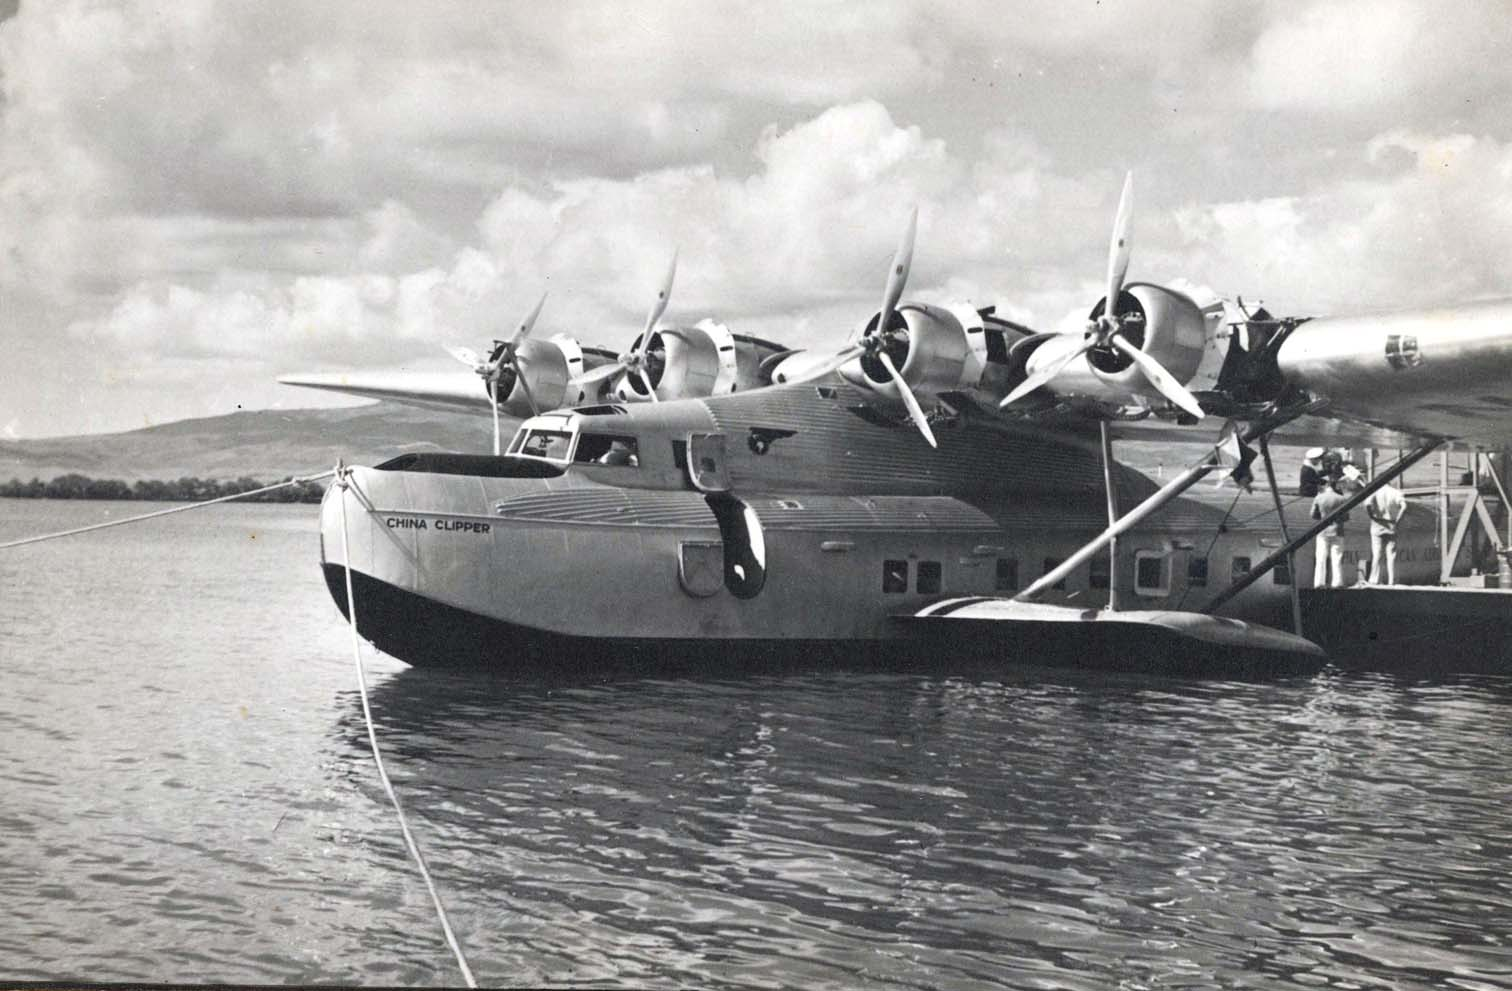 70 Years Ago Today… Crash of the China Clipper in Trinidad | The Open Window